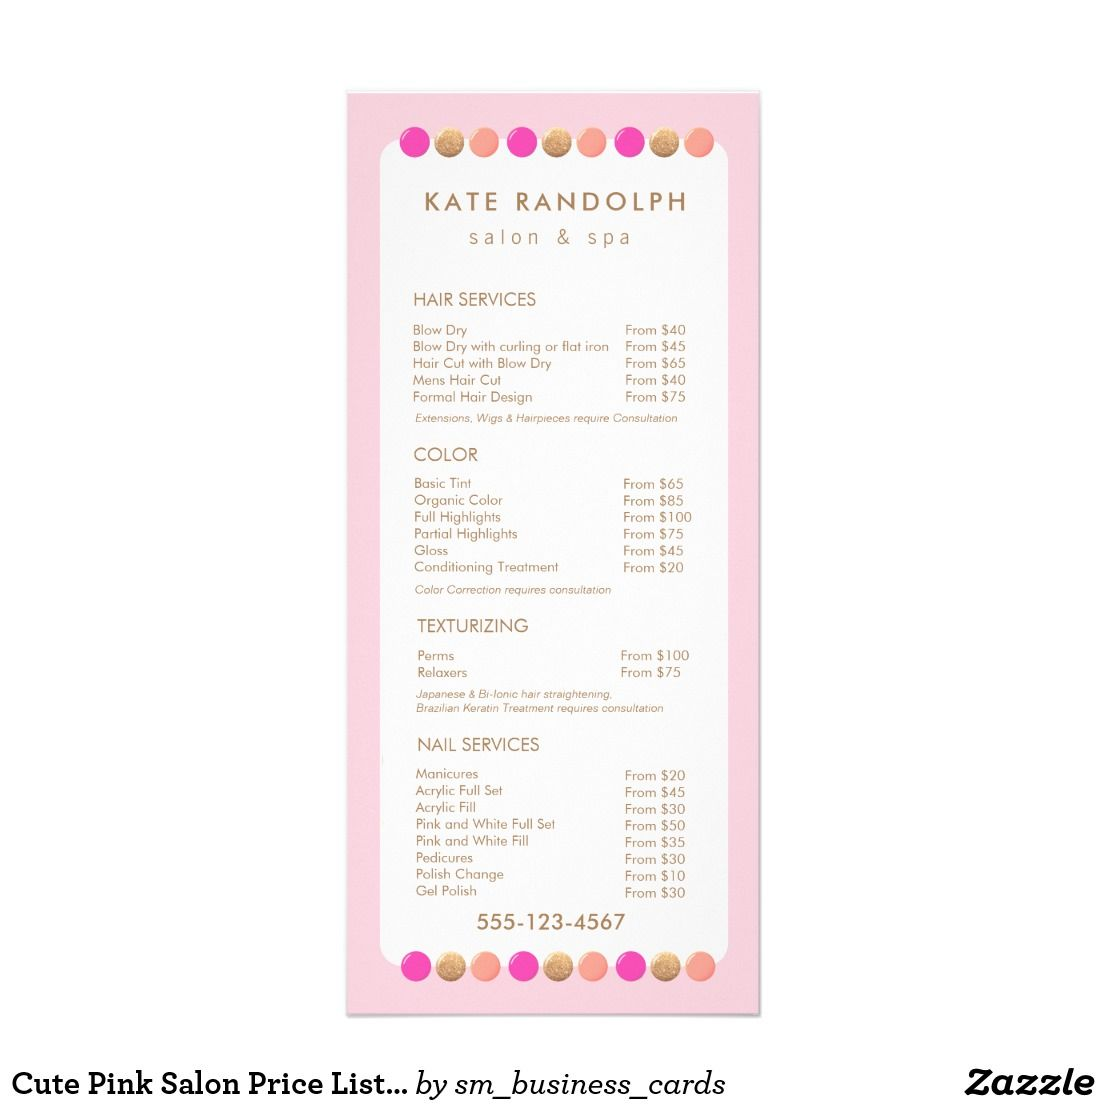 Cute Pink Salon Price List Service Menu  Fashion And Beauty